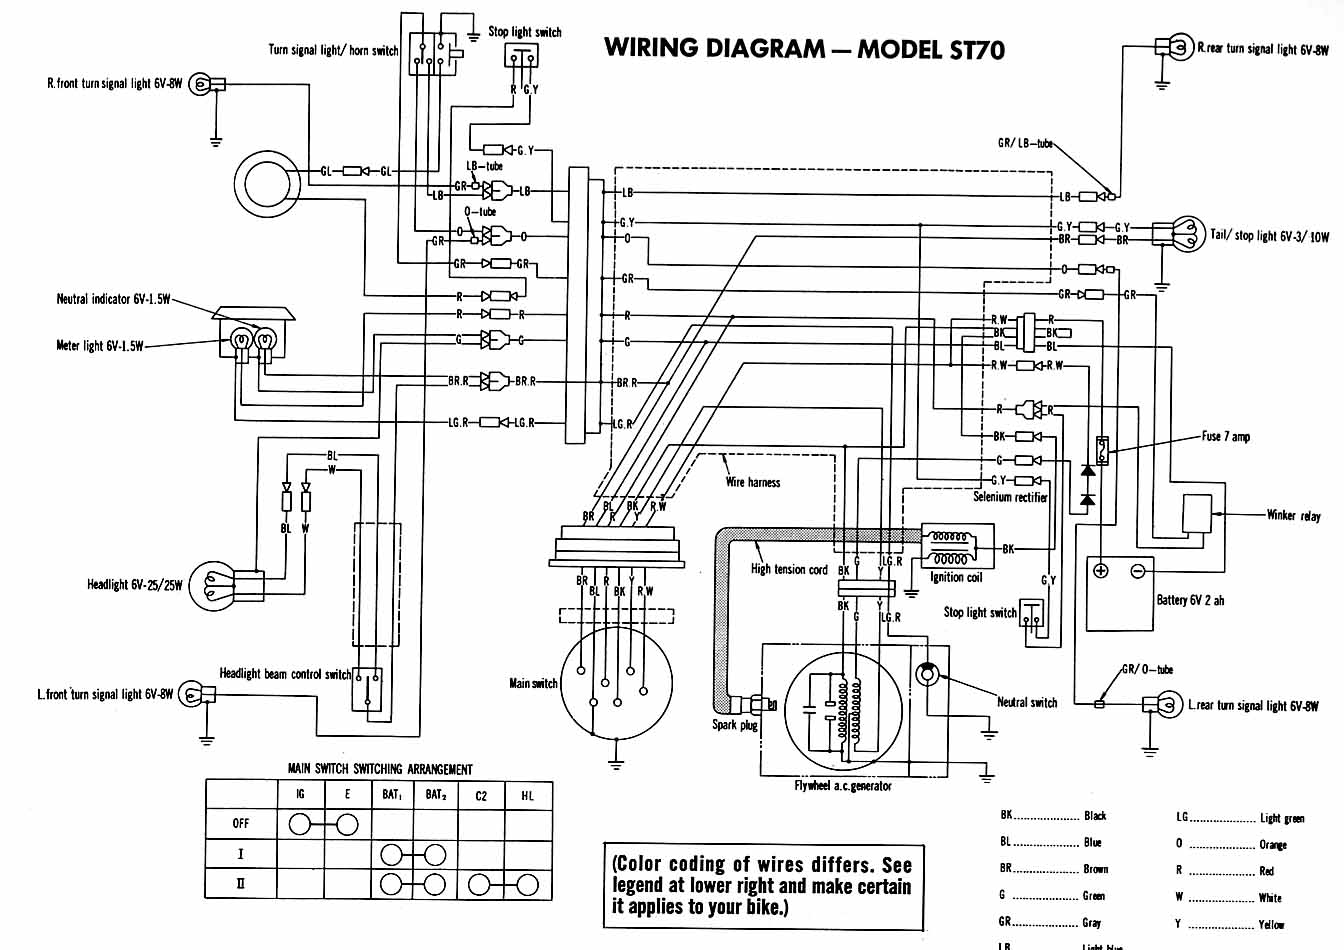 Index Of  Wiringdiagrams Cycleterminal Com